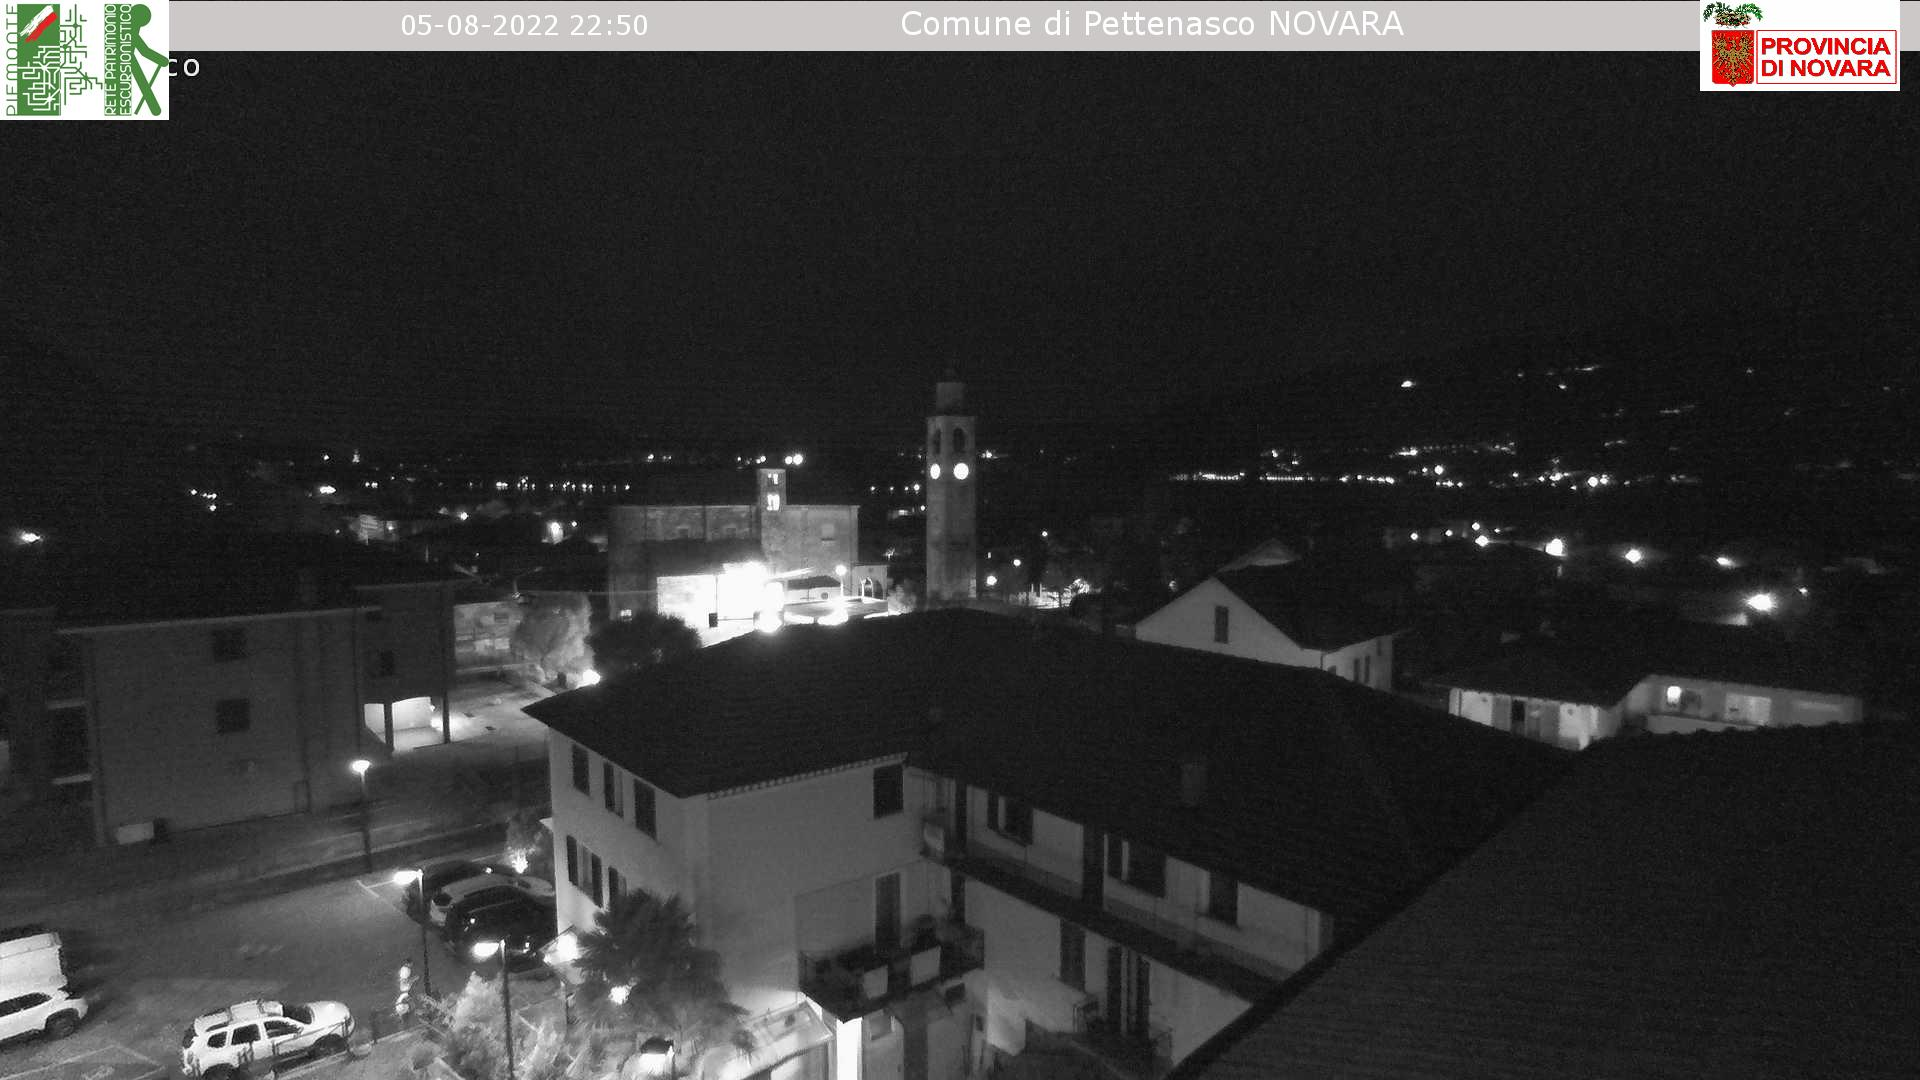 WebCam Pettenasco, Provincia Novara